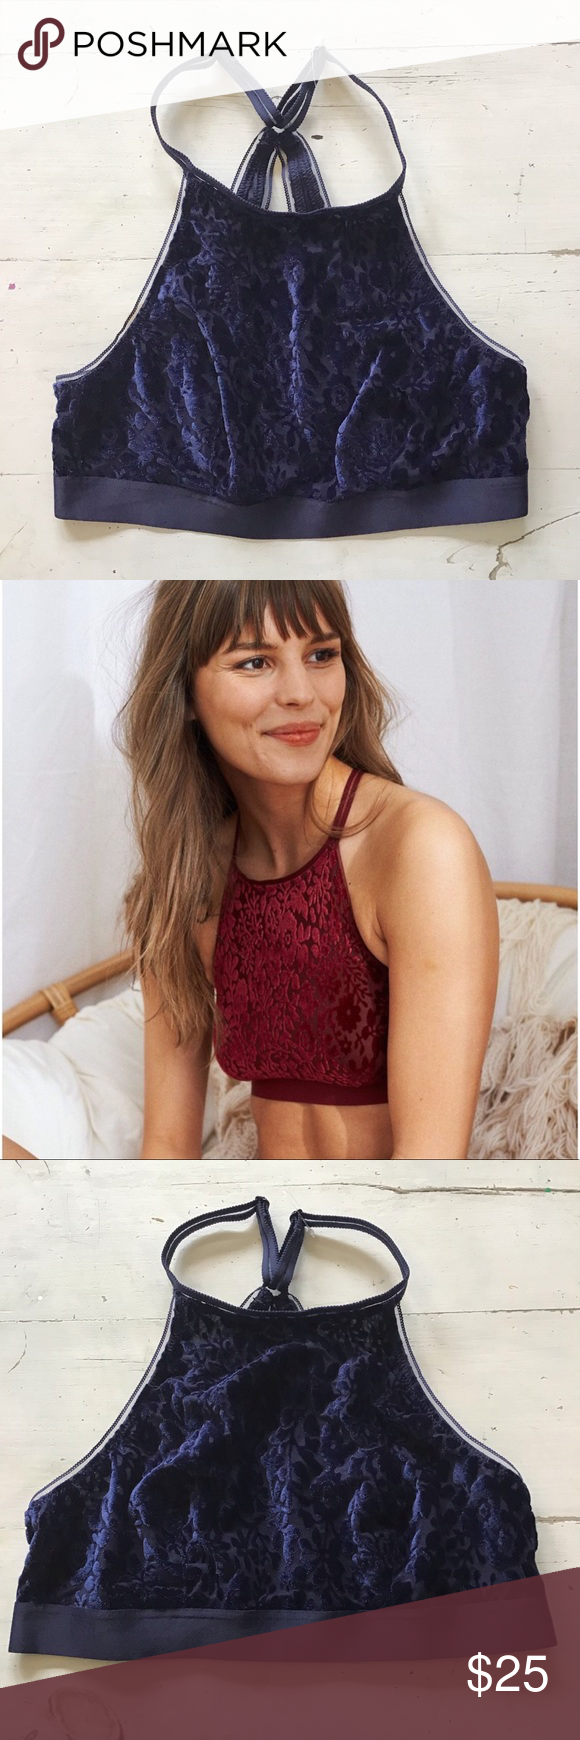 a42ccfd570f5f NEW ~ aerie Velvet high neck Bralette New with no tags! Beautiful burnout  floral velvet bralette Navy blue Adjustable straps and back aerie Intimates    ...